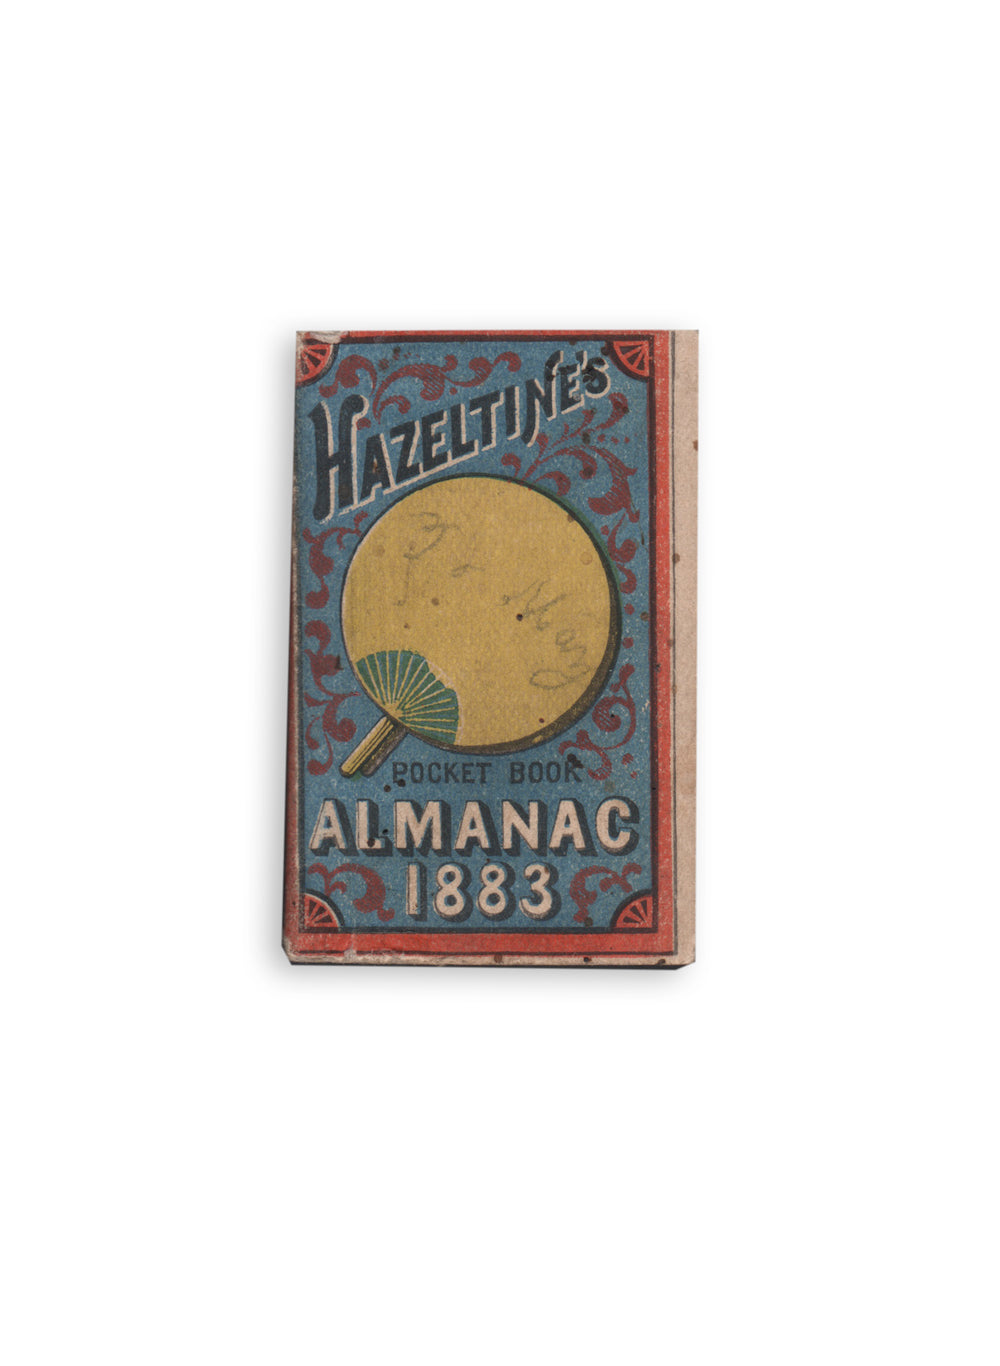 Hazeltine's Pocket-Book Almanac 1883